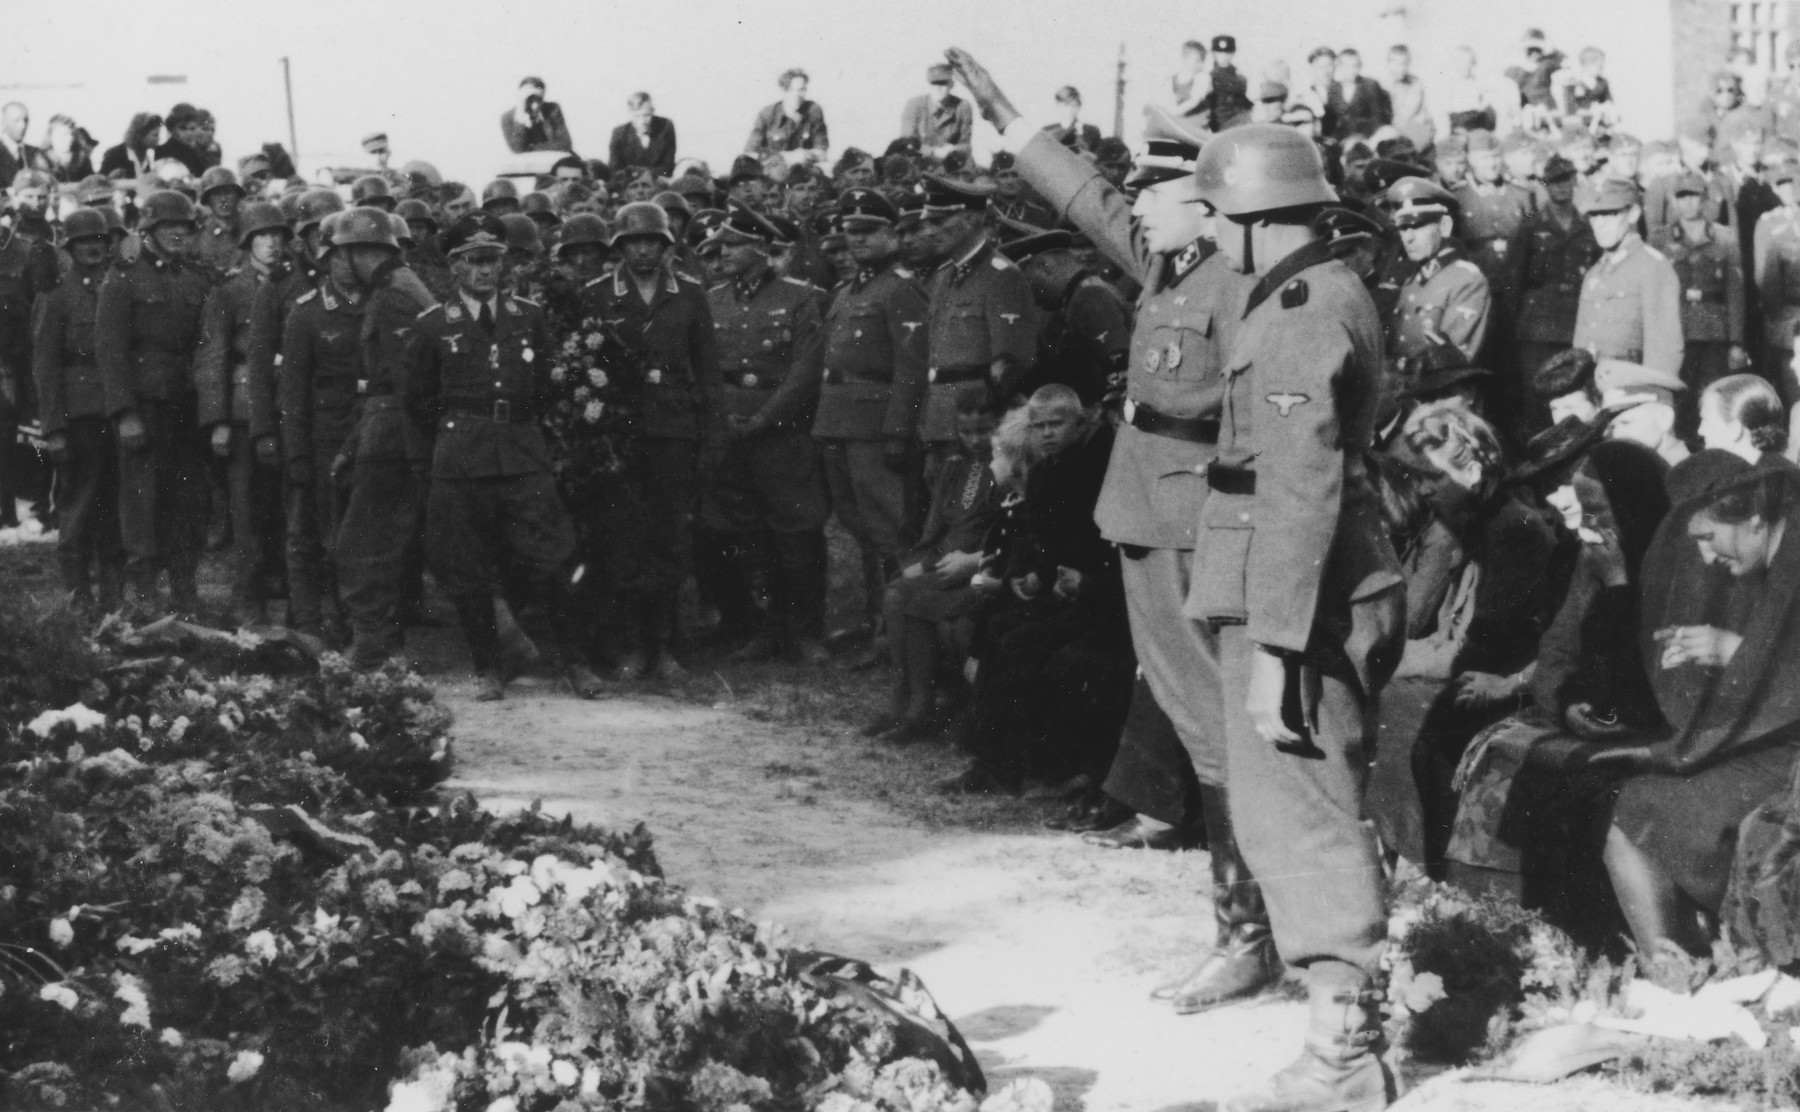 """SS officer, Karl Hoecker salutes in front of an array of wreaths during a military funeral near Auschwitz.  The original caption reads """"Beisetzung von SS Kameraden nach einem Terrorangriff.""""  (Burying our SS comrades from a terror attack.)   This probably is the aftermath of the September 13th bombing of IG Farben in which 15 SS men died in the SS residential blocks and 28 were seriously wounded.  Pictured in the background are Josef Kramer and Karl Moeckel."""